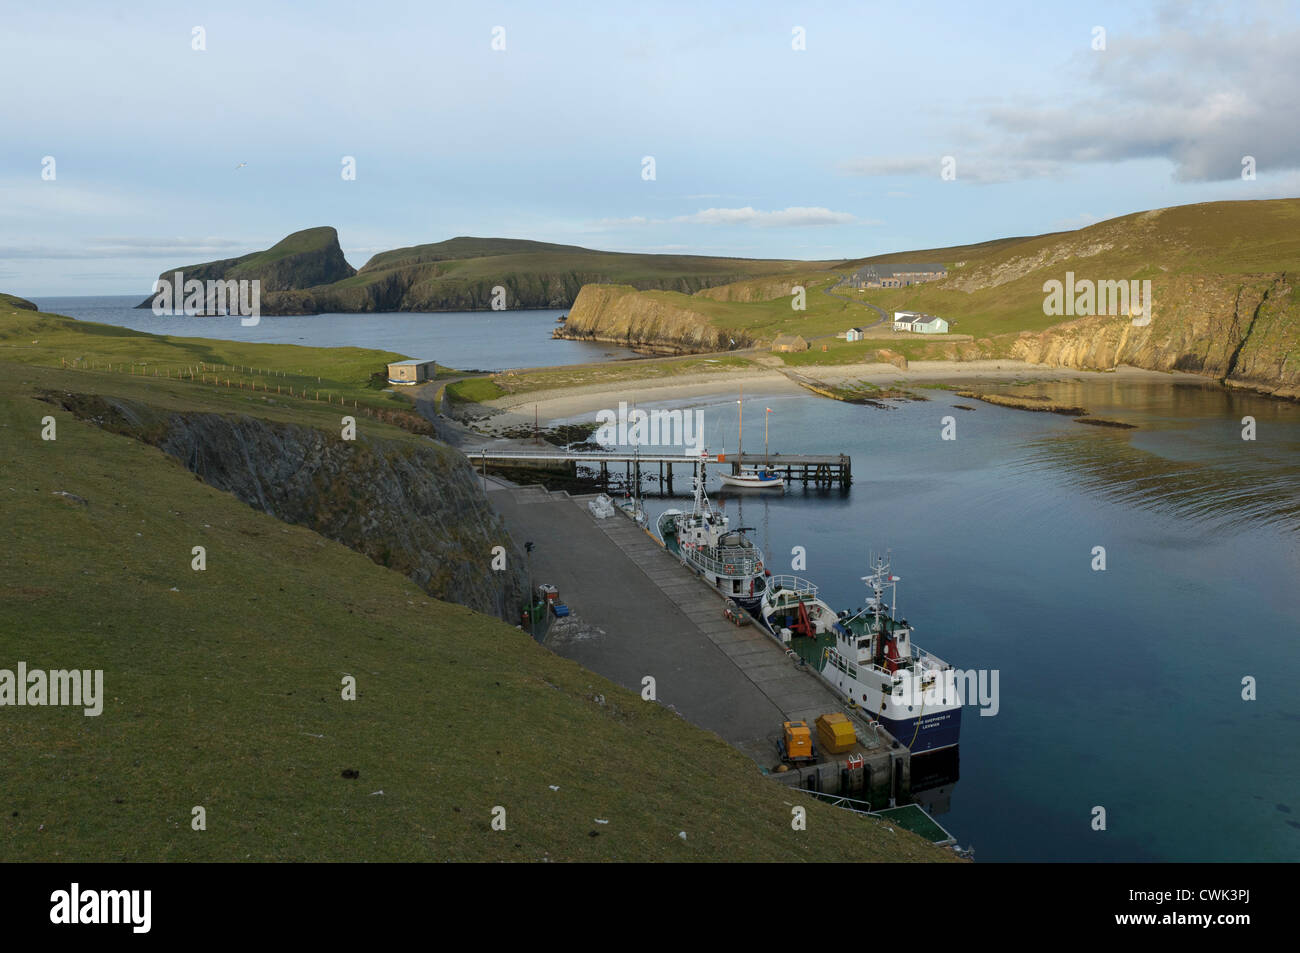 Mail boat Good Shepherd IV on the pier in North Haven on Fair Isle, Shetland, with Sheep Rock in distance. June - Stock Image